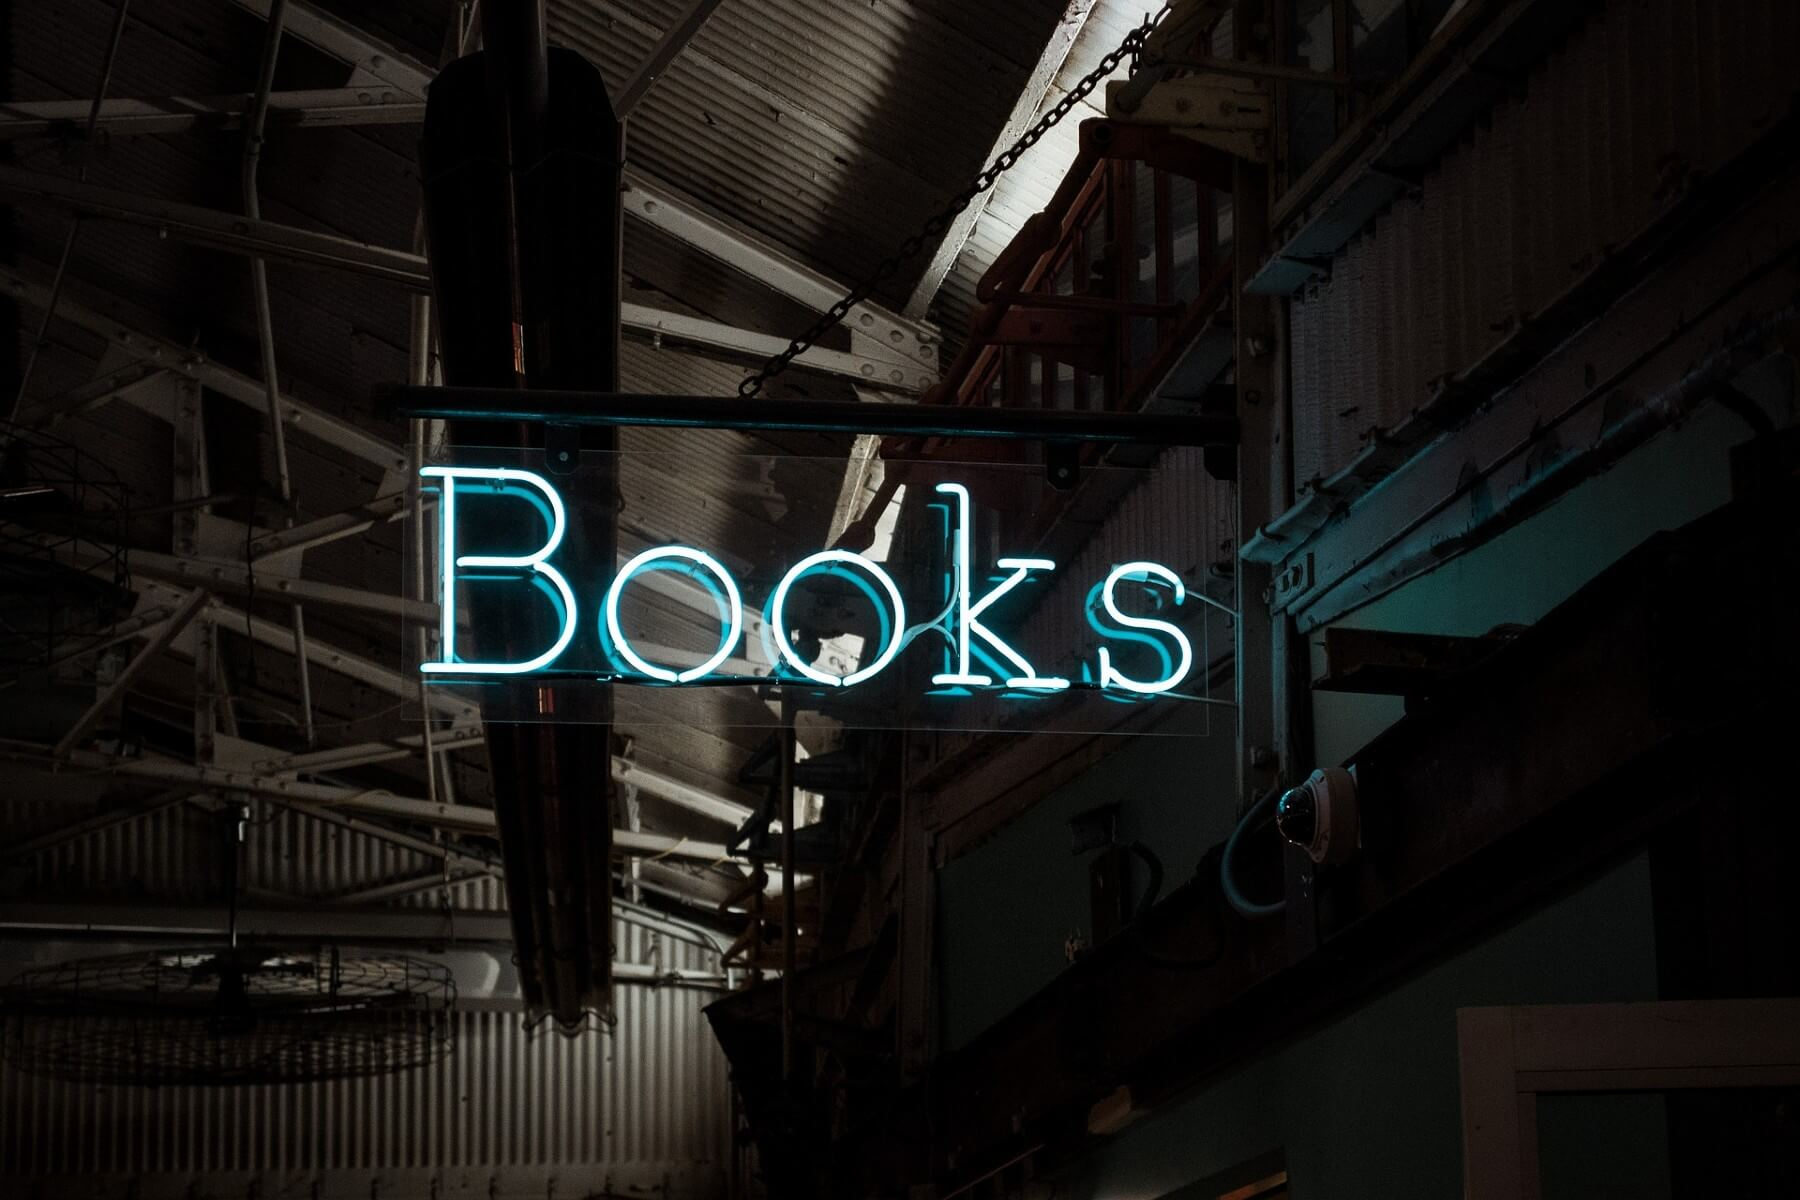 a blue neon sign that says books hanging near an open industrial ceiling